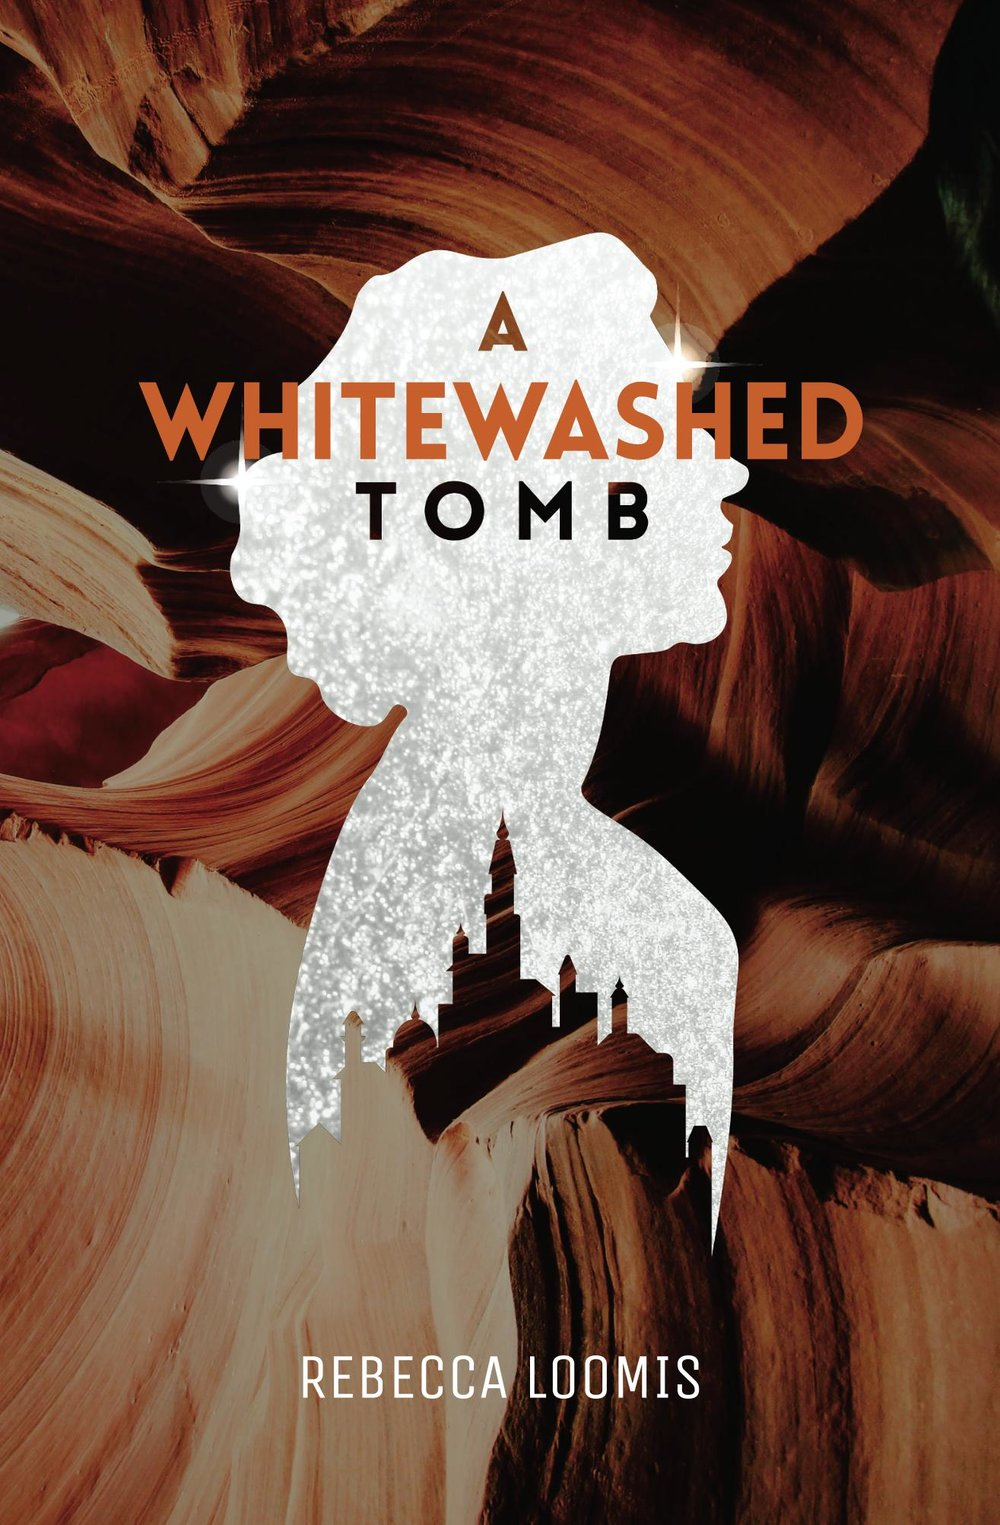 A_Whitewashed_Tomb_Cover_for_Kindle.jpg